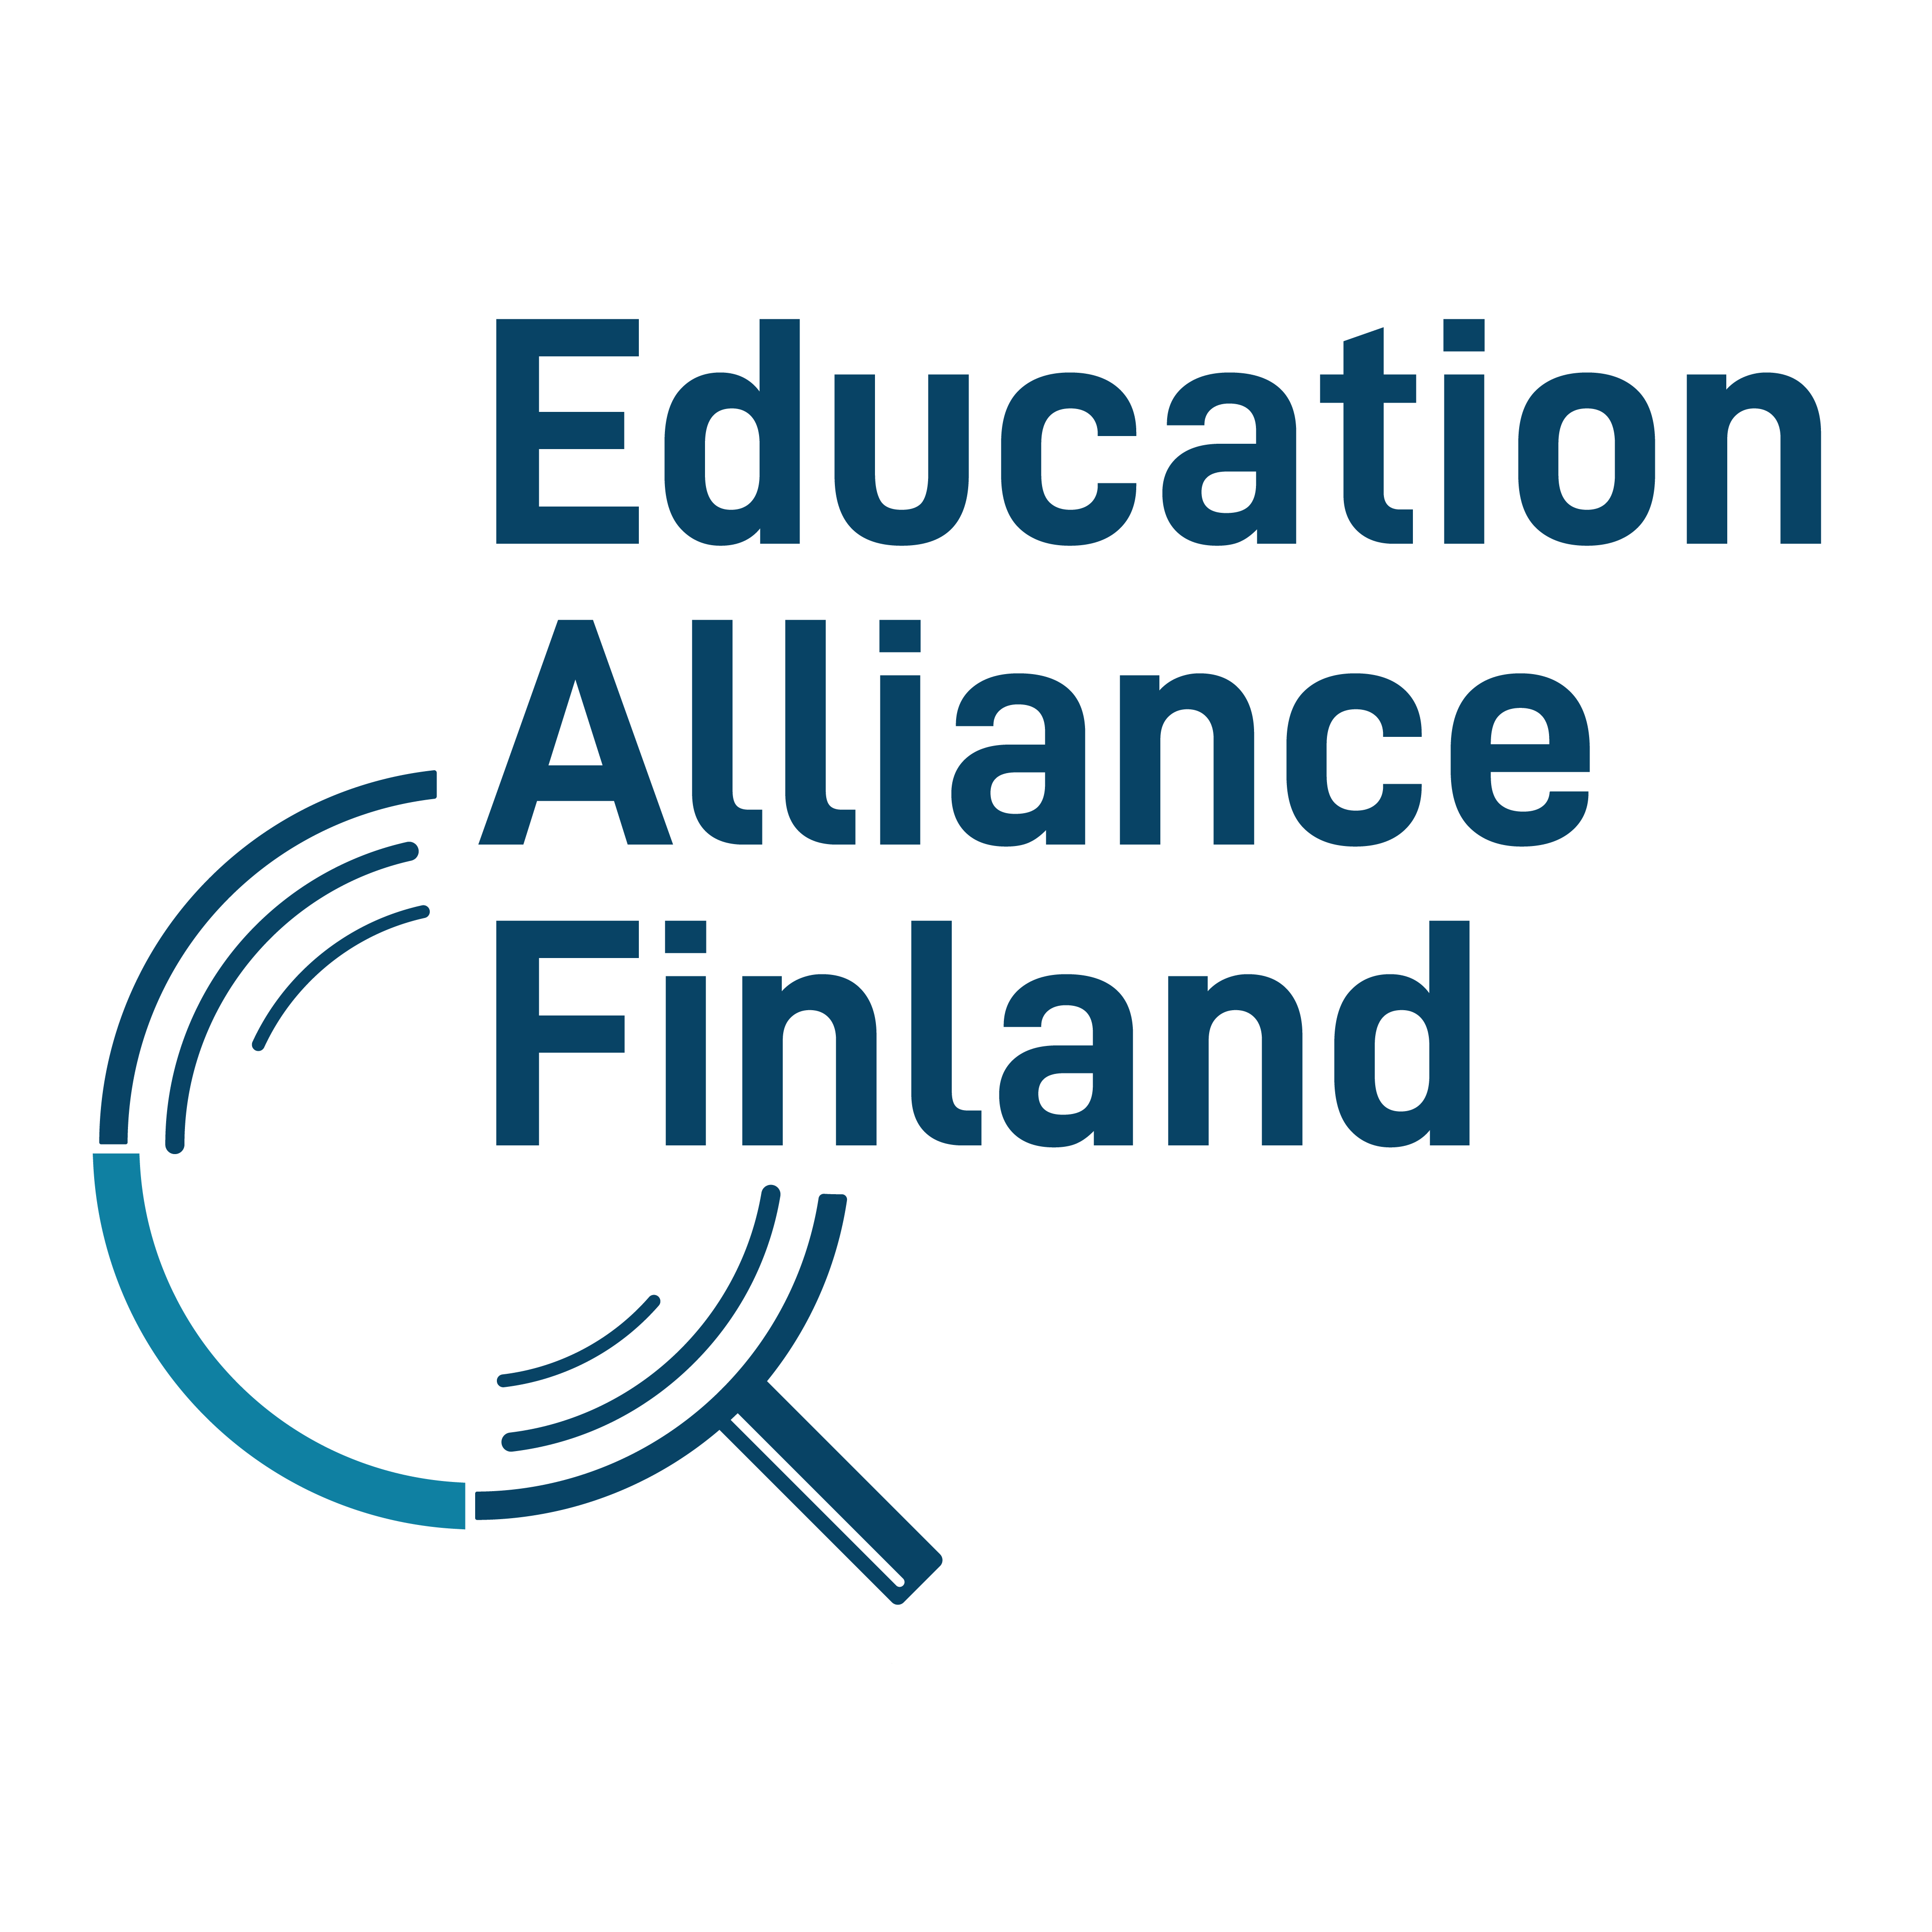 Education Alliance Finland EdTech Quality Certification